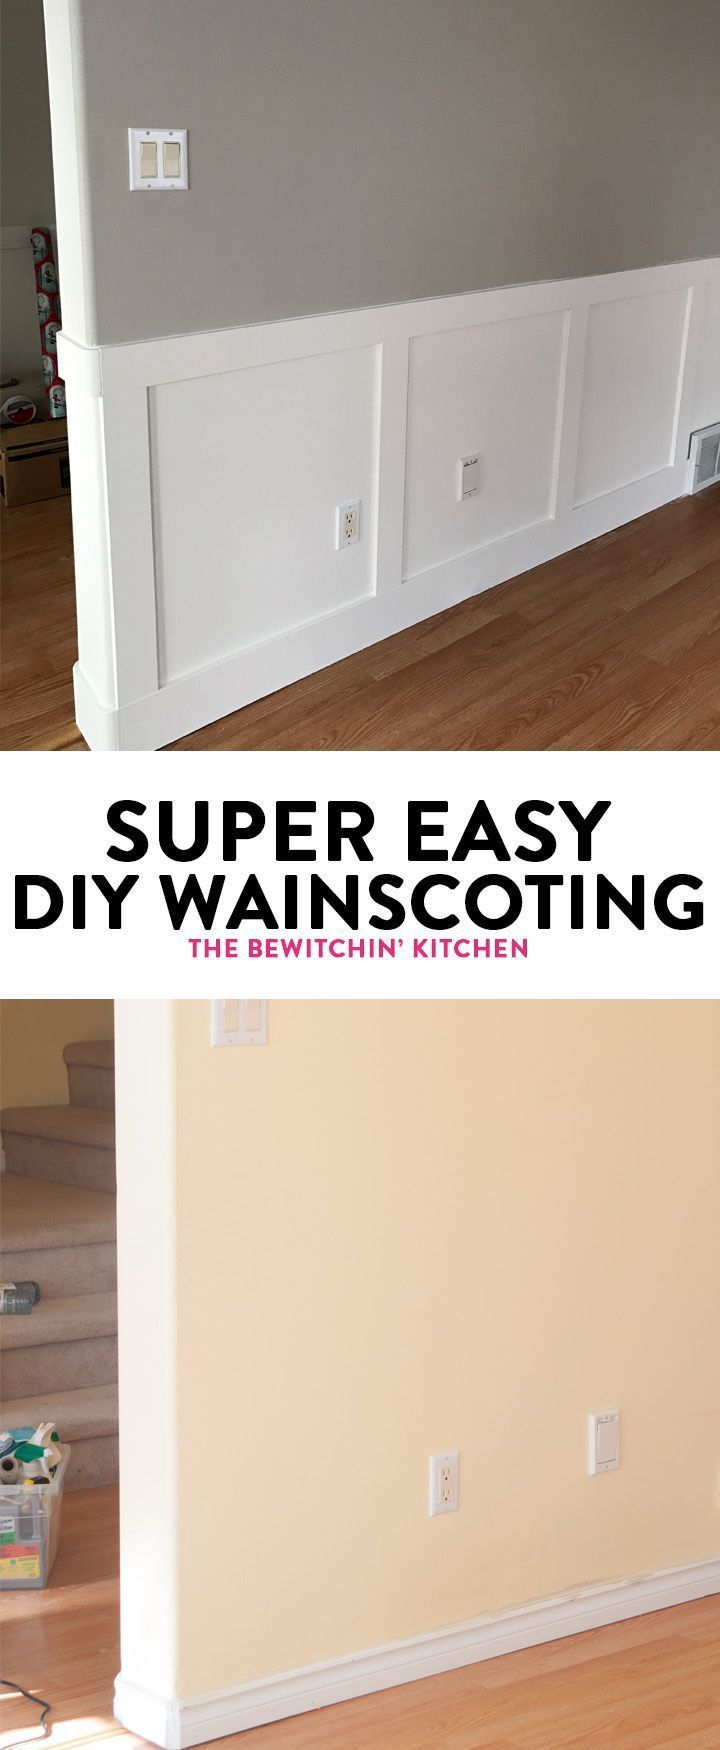 Wainscot solutions inc custom assembled wainscoting - Diy Wainscoting Renovation I Didn T Think Installing Wainscotting Would Be So Easy